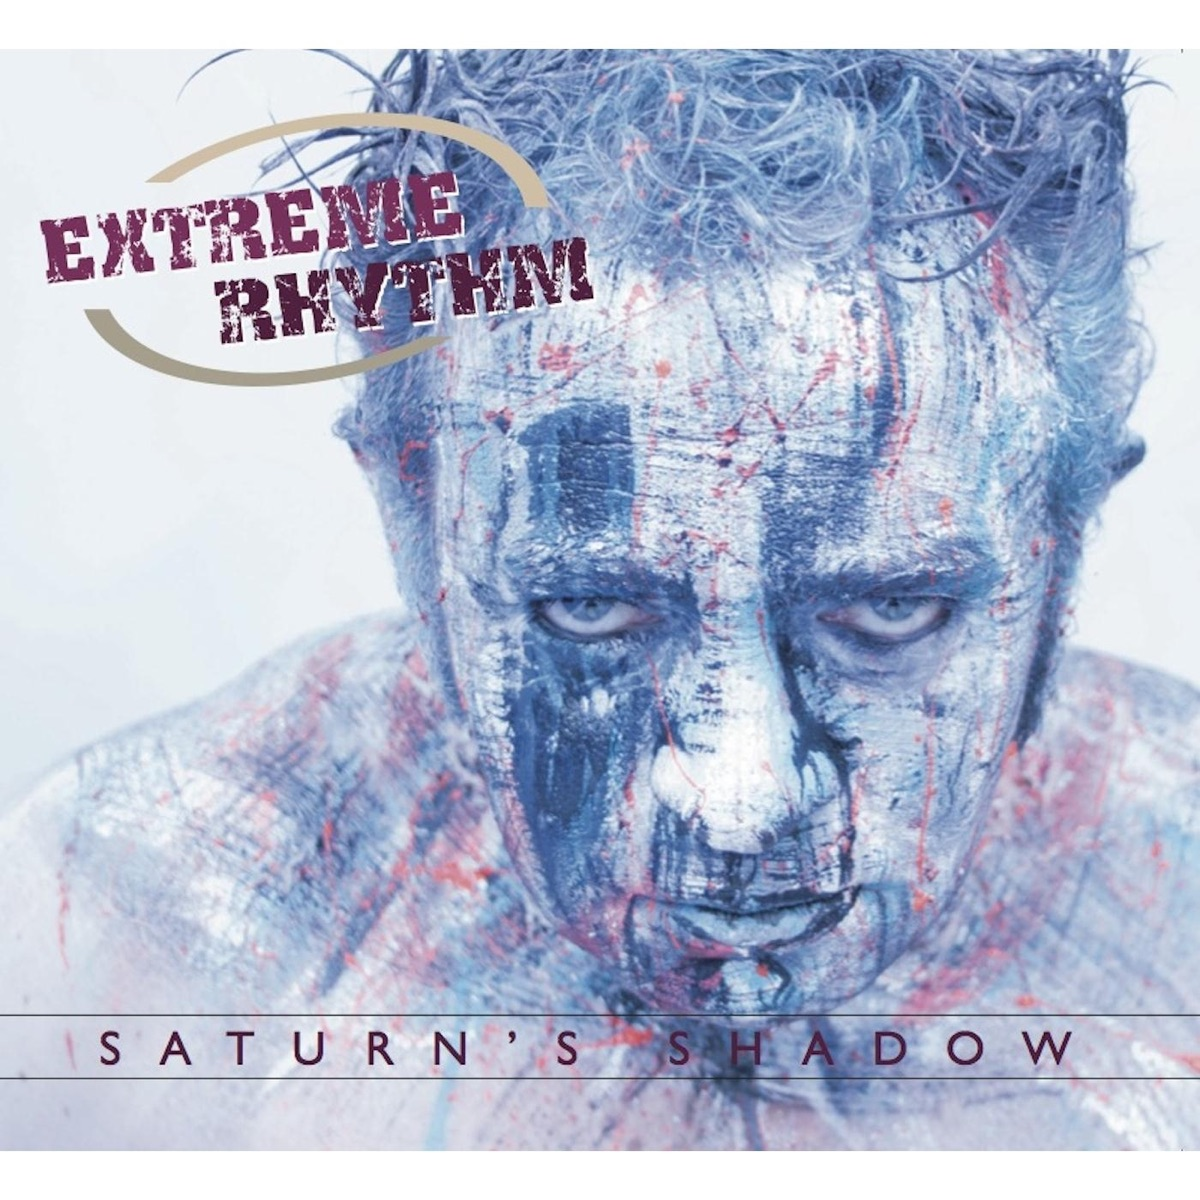 Saturns Shadow Extreme Rhythm CD cover